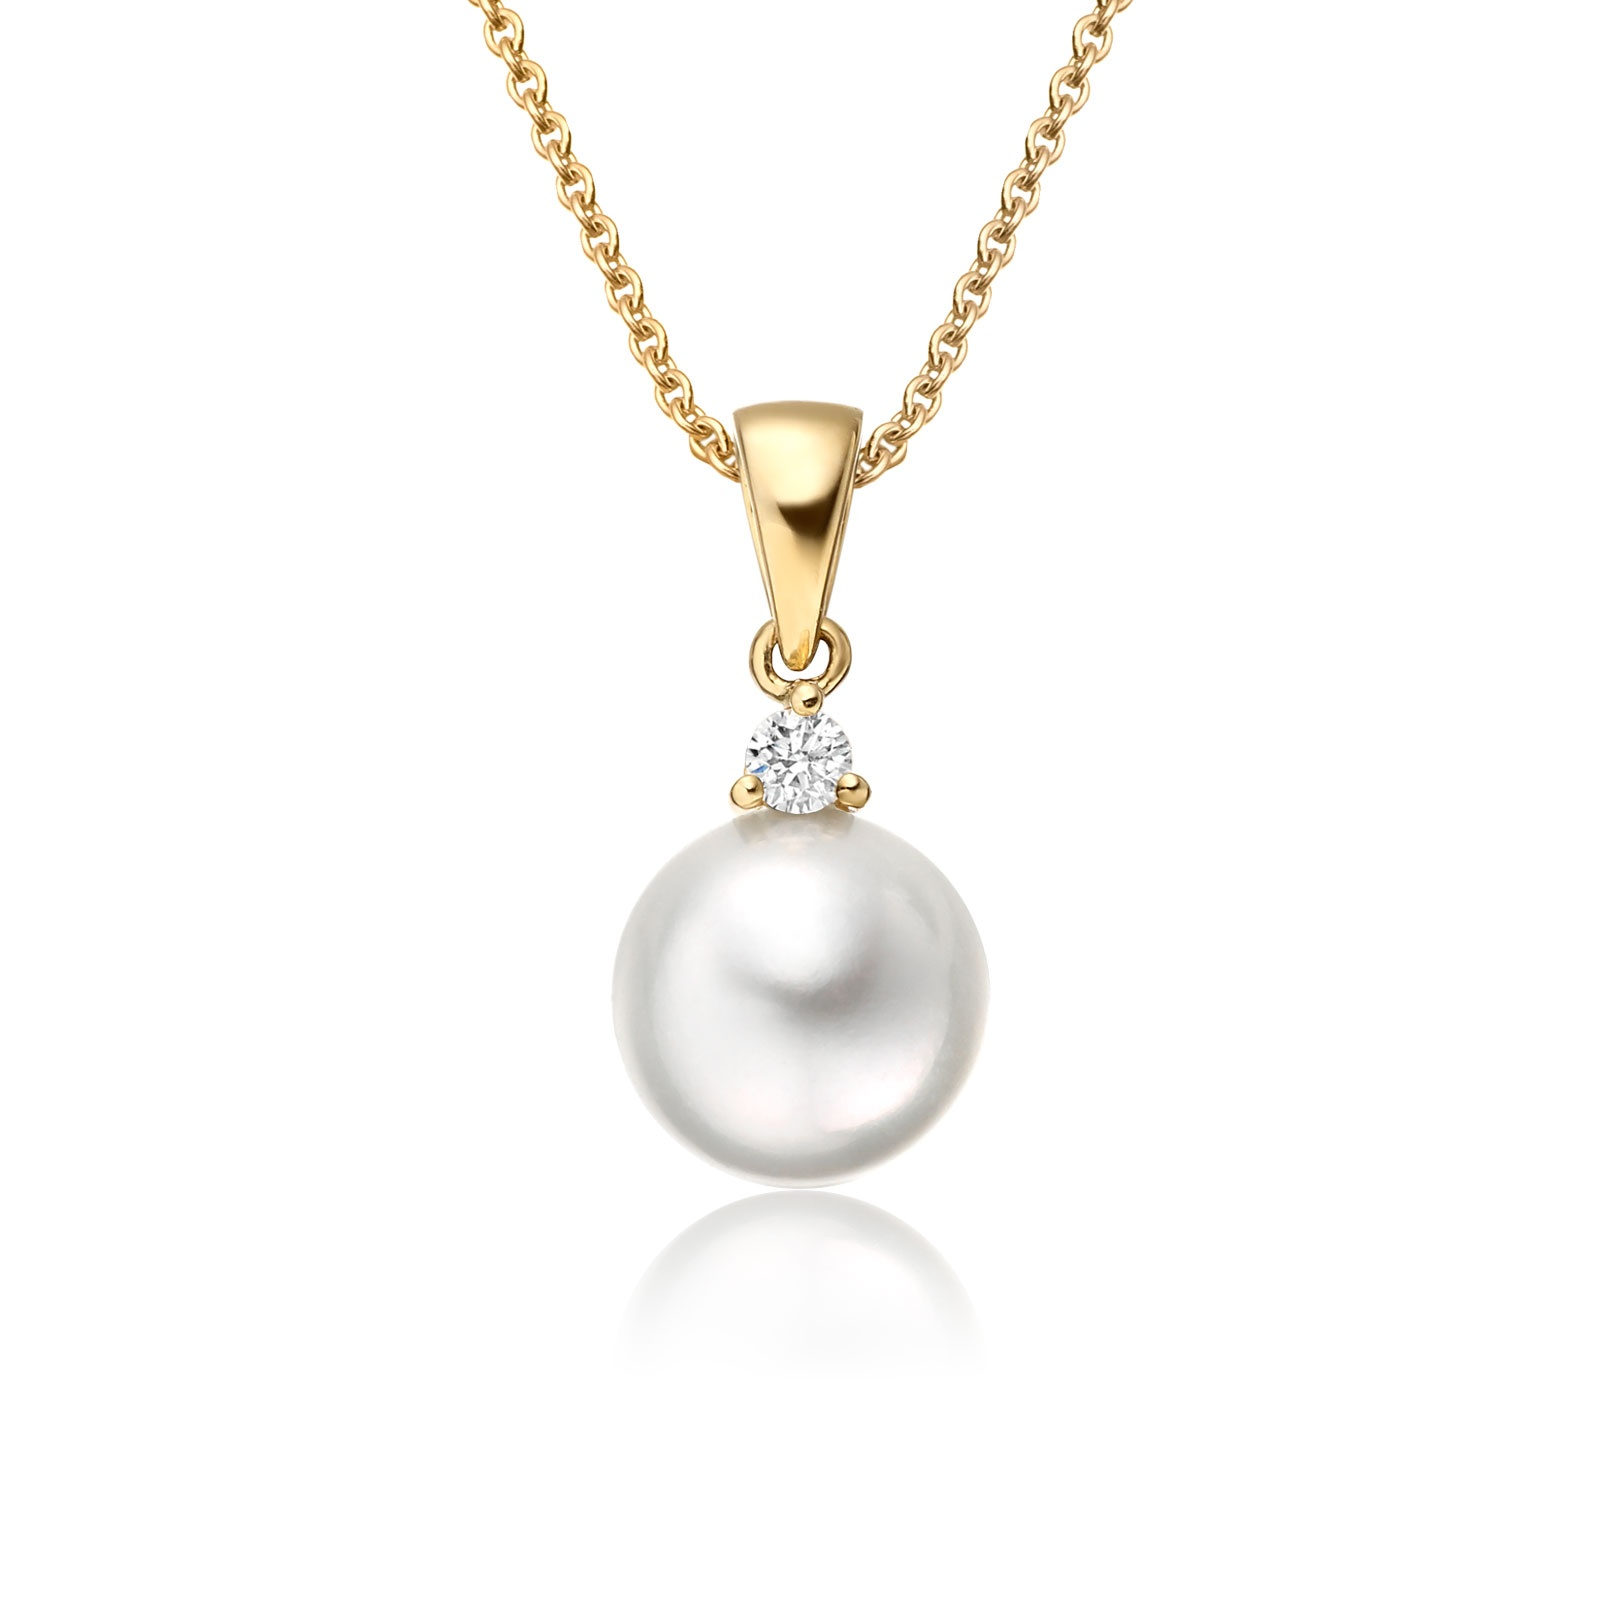 rose dropnk nk park jewelry gold jamie pear necklace products copy pearl by drop of diamond